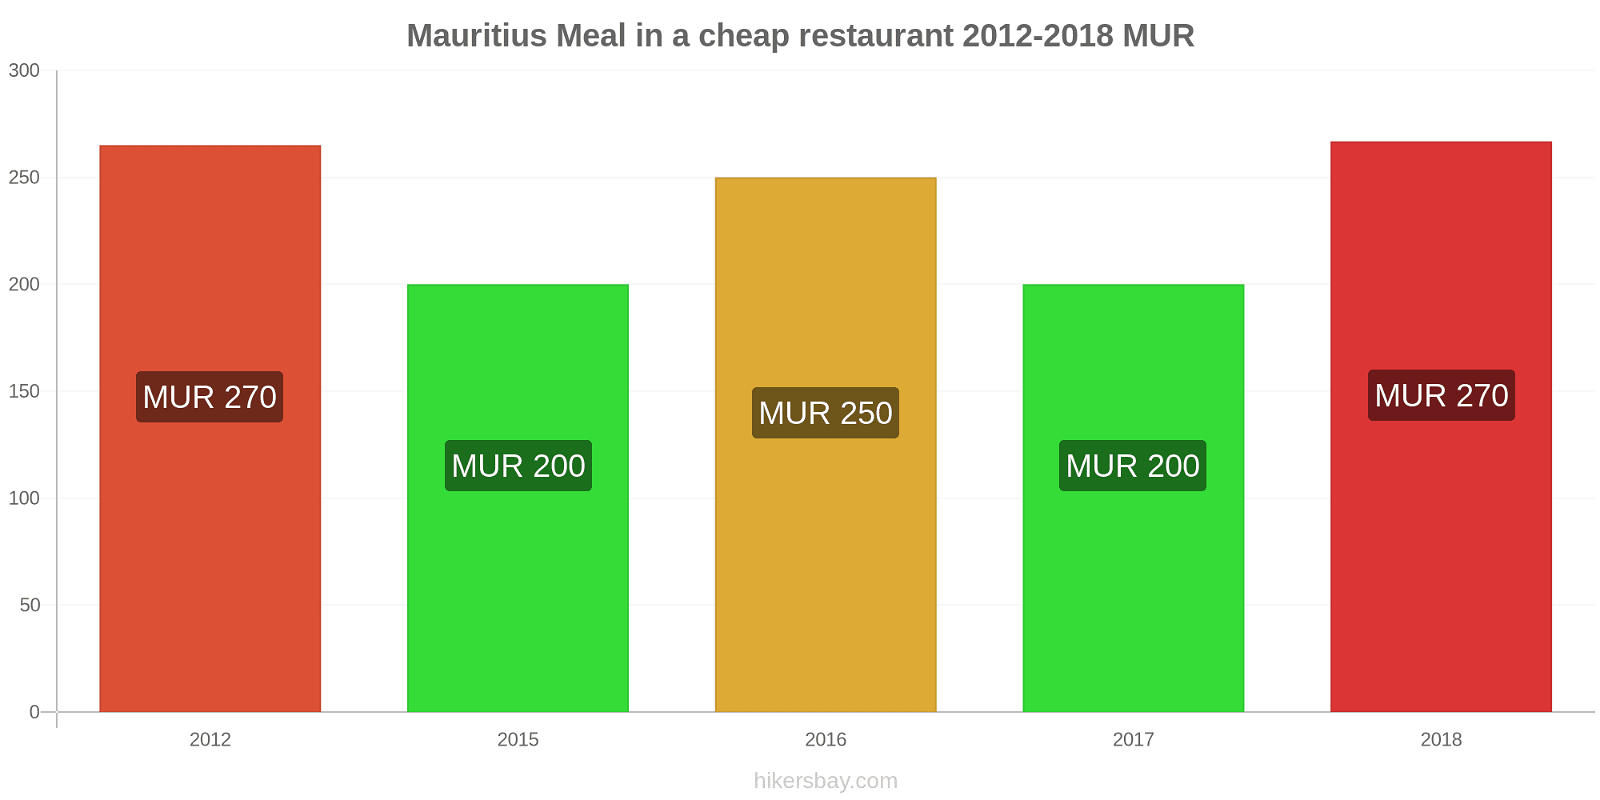 Mauritius price changes Meal in a cheap restaurant hikersbay.com